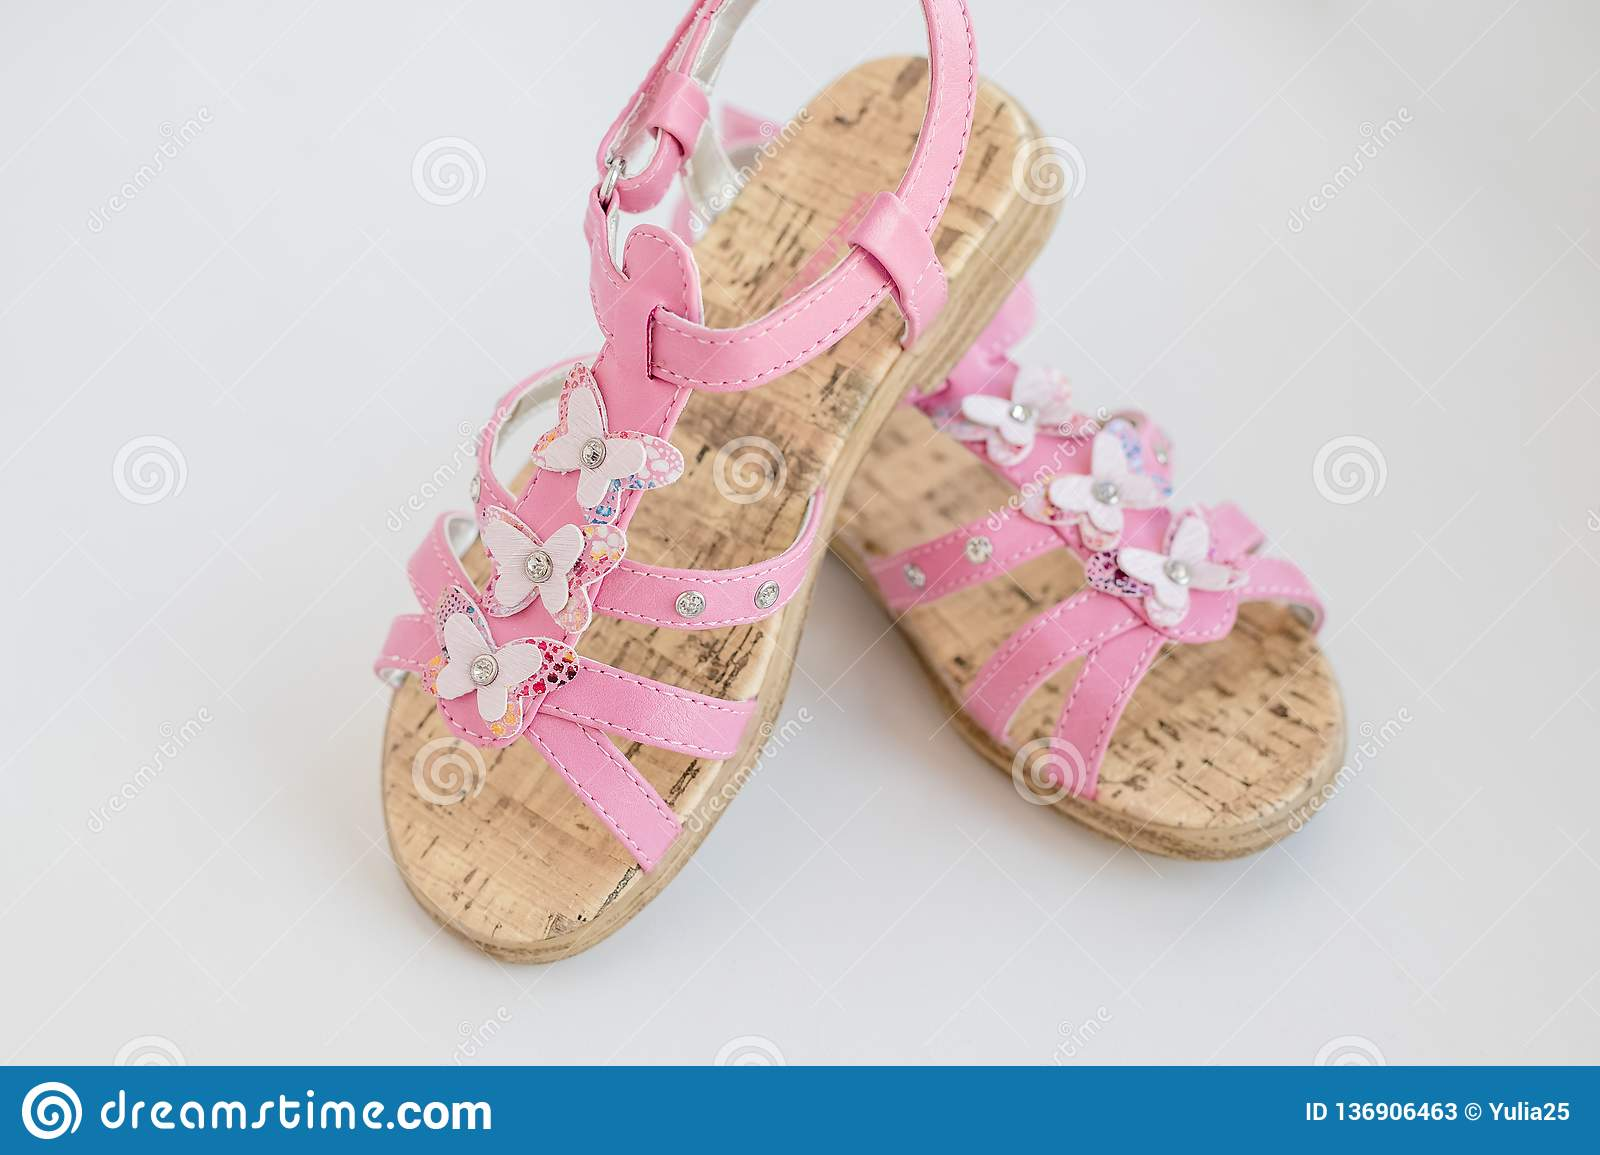 Baby Shoes, Kids Summer Fashion.Shoes